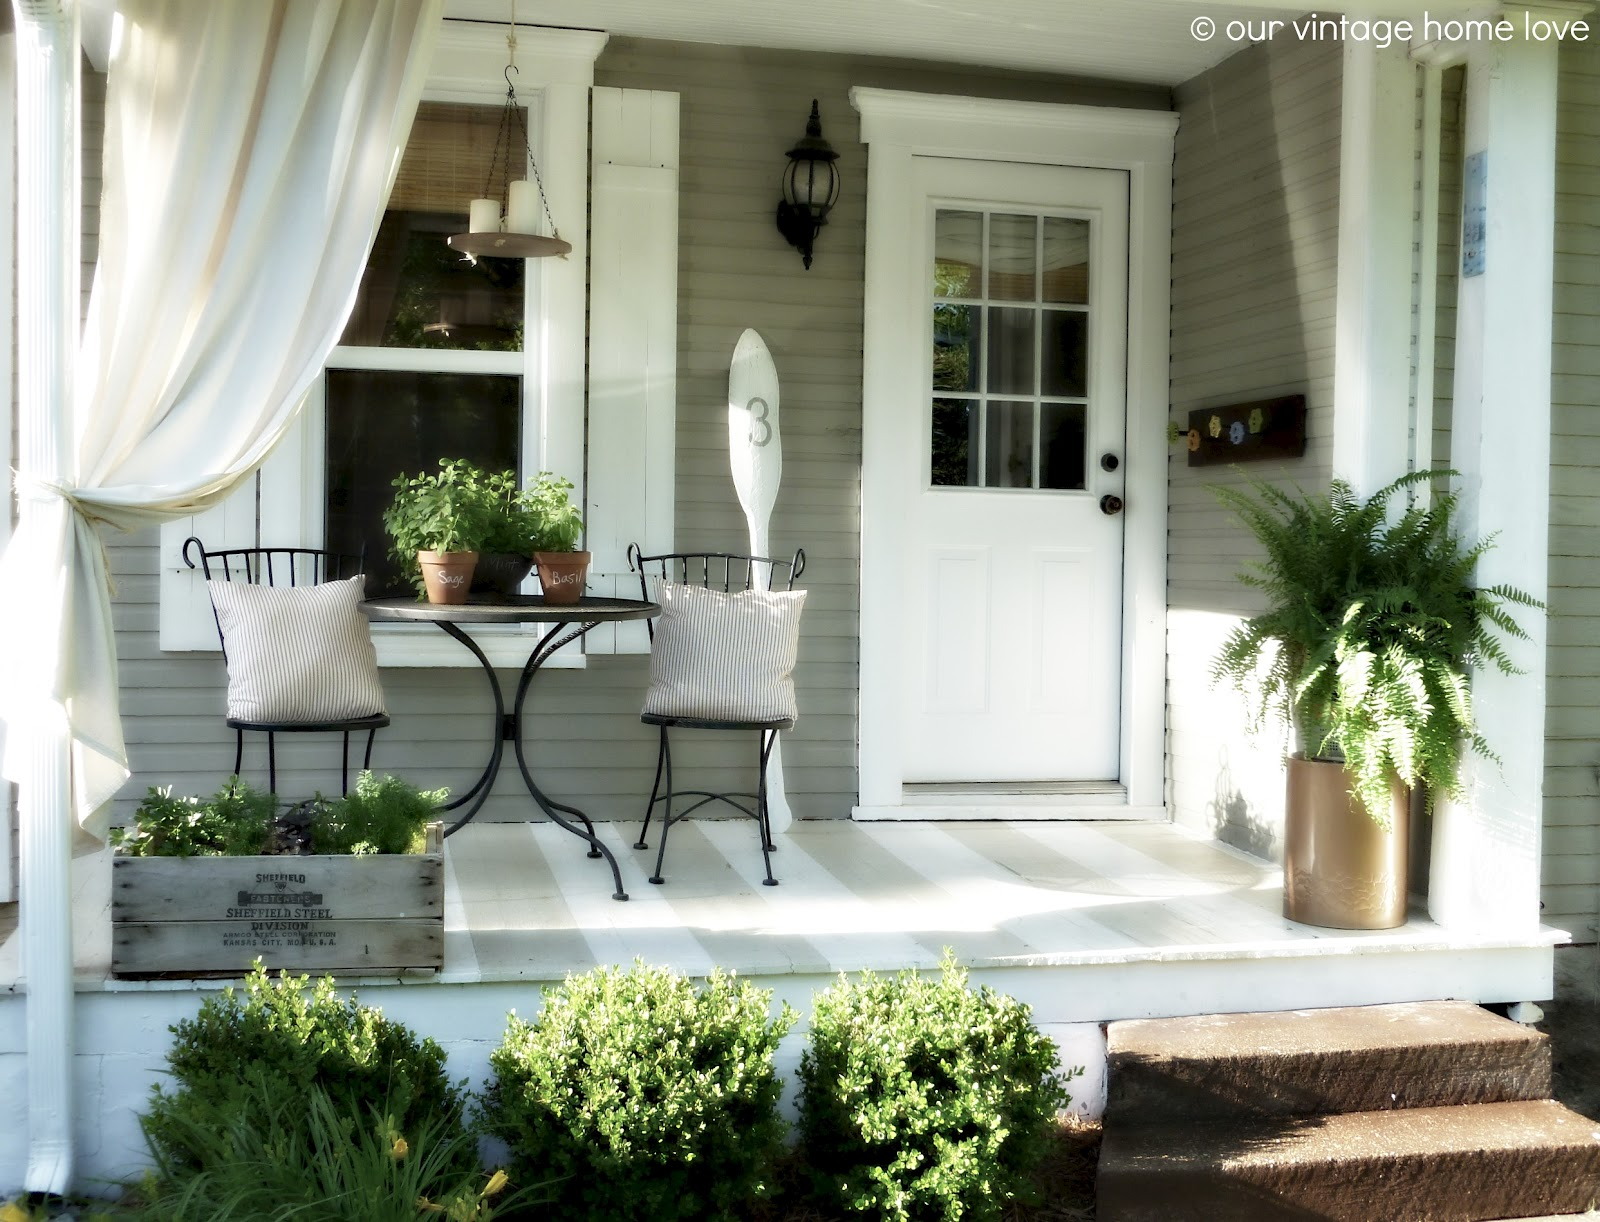 Vintage home love back side porch ideas for summer and an for Simple patio decorating ideas